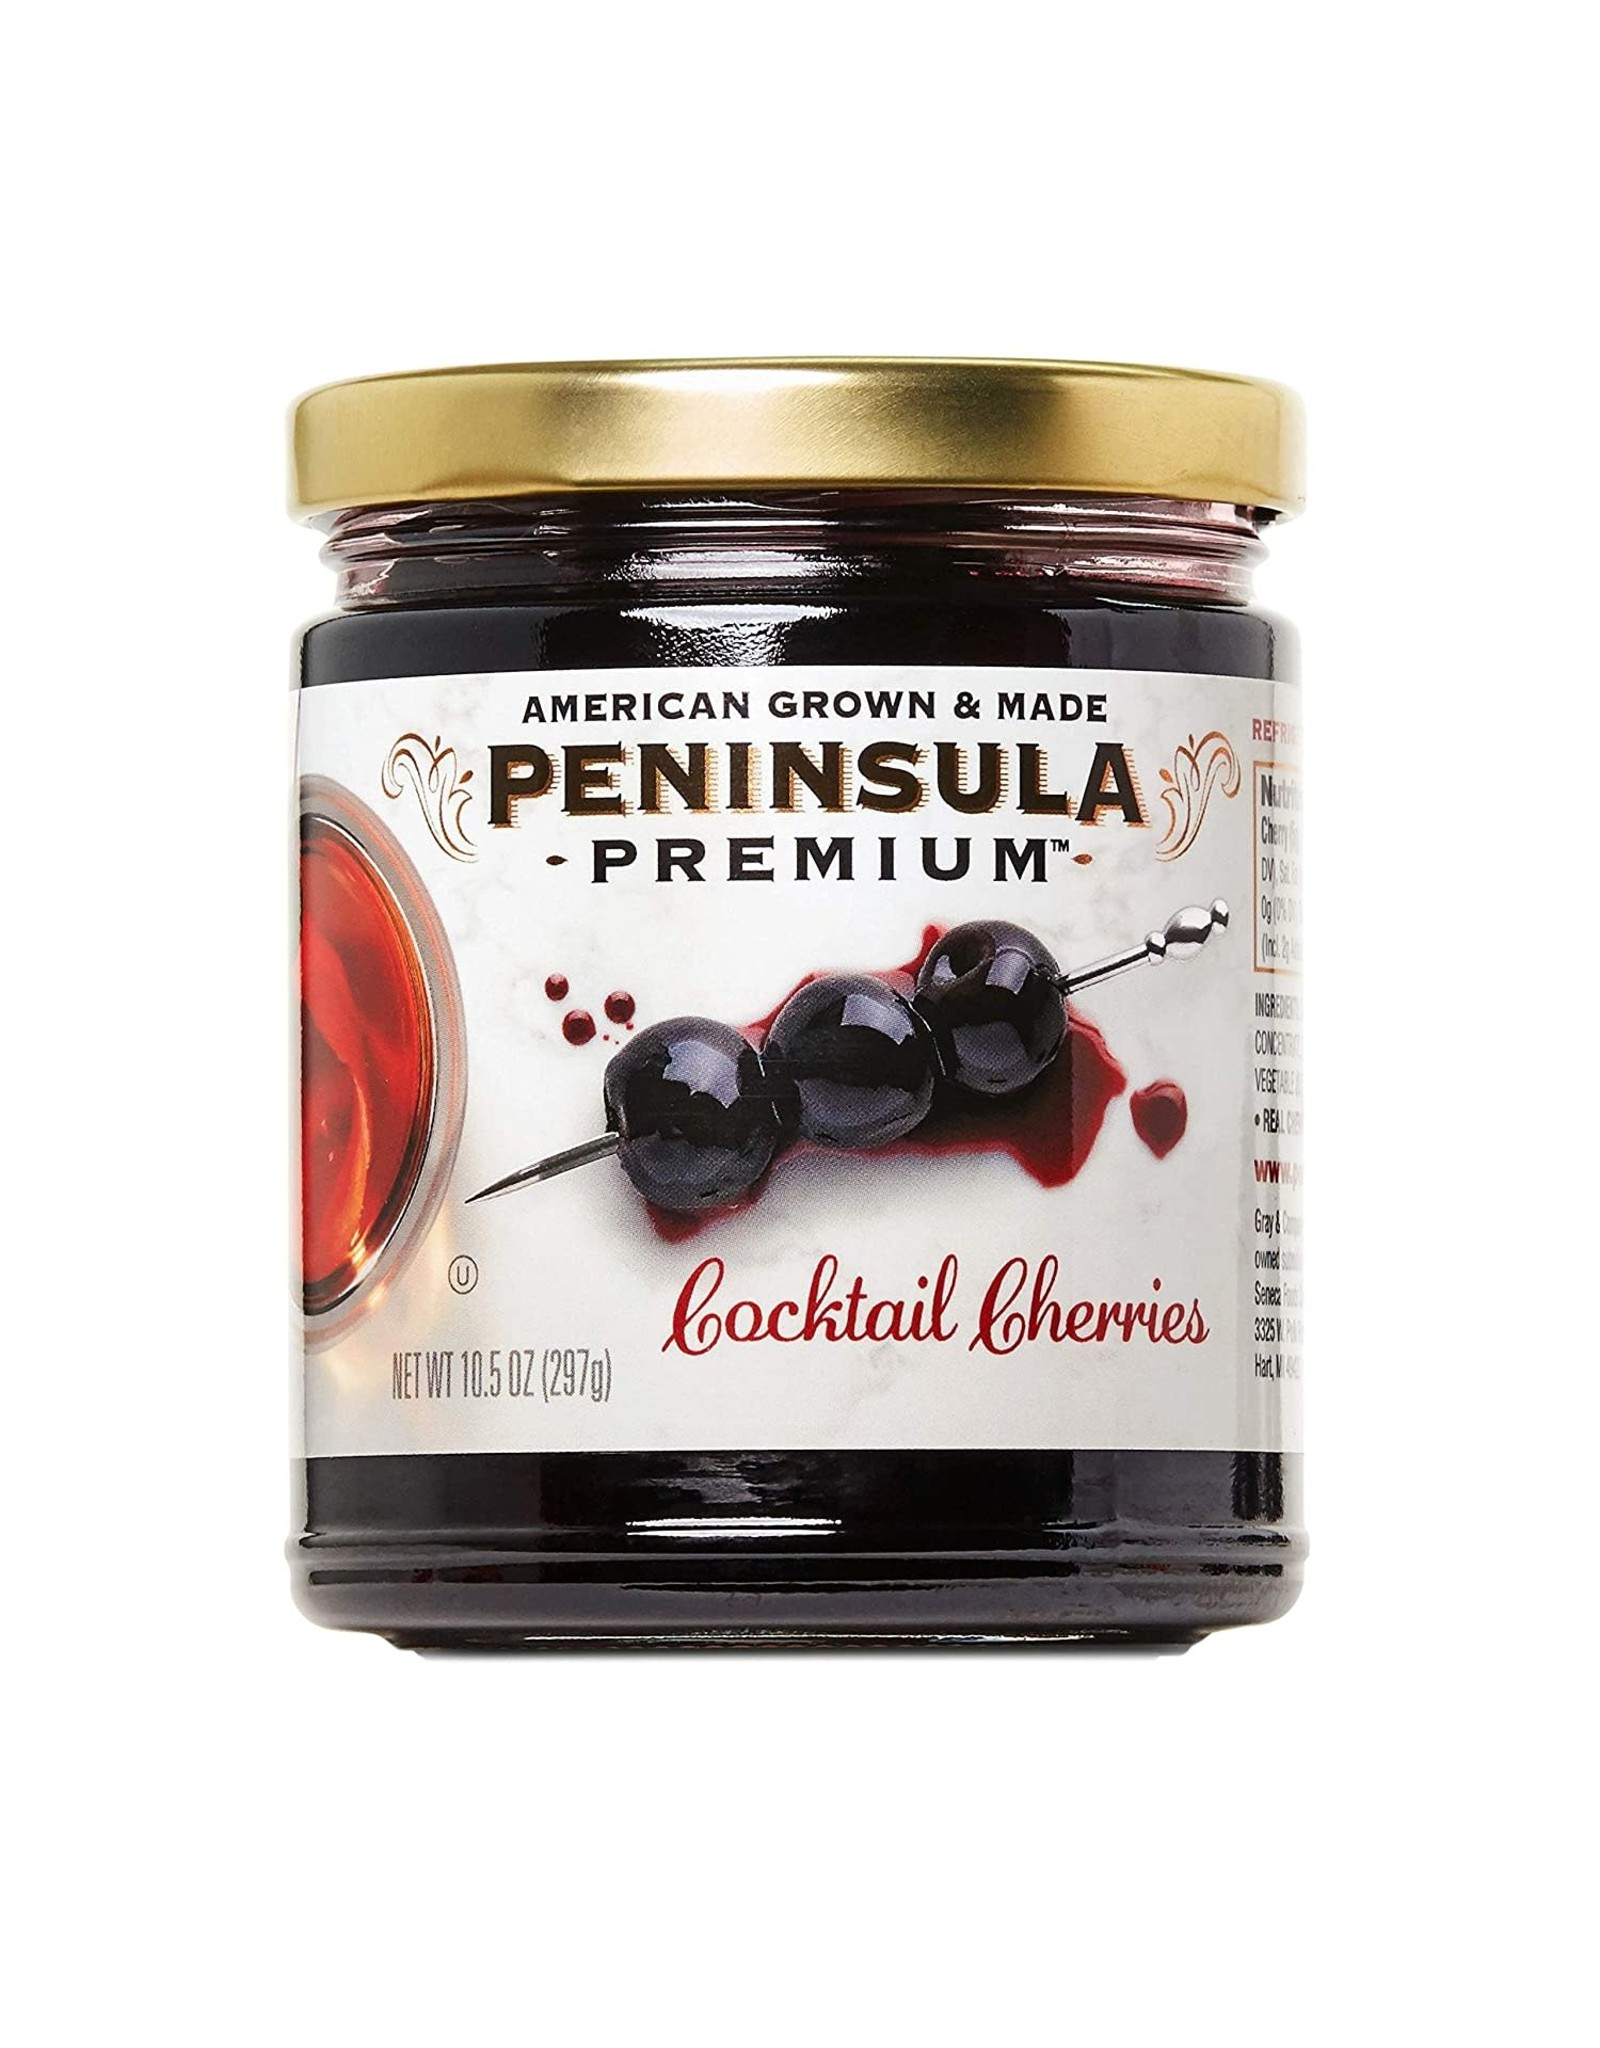 OLIVE-IT COCKTAIL CHERRIES